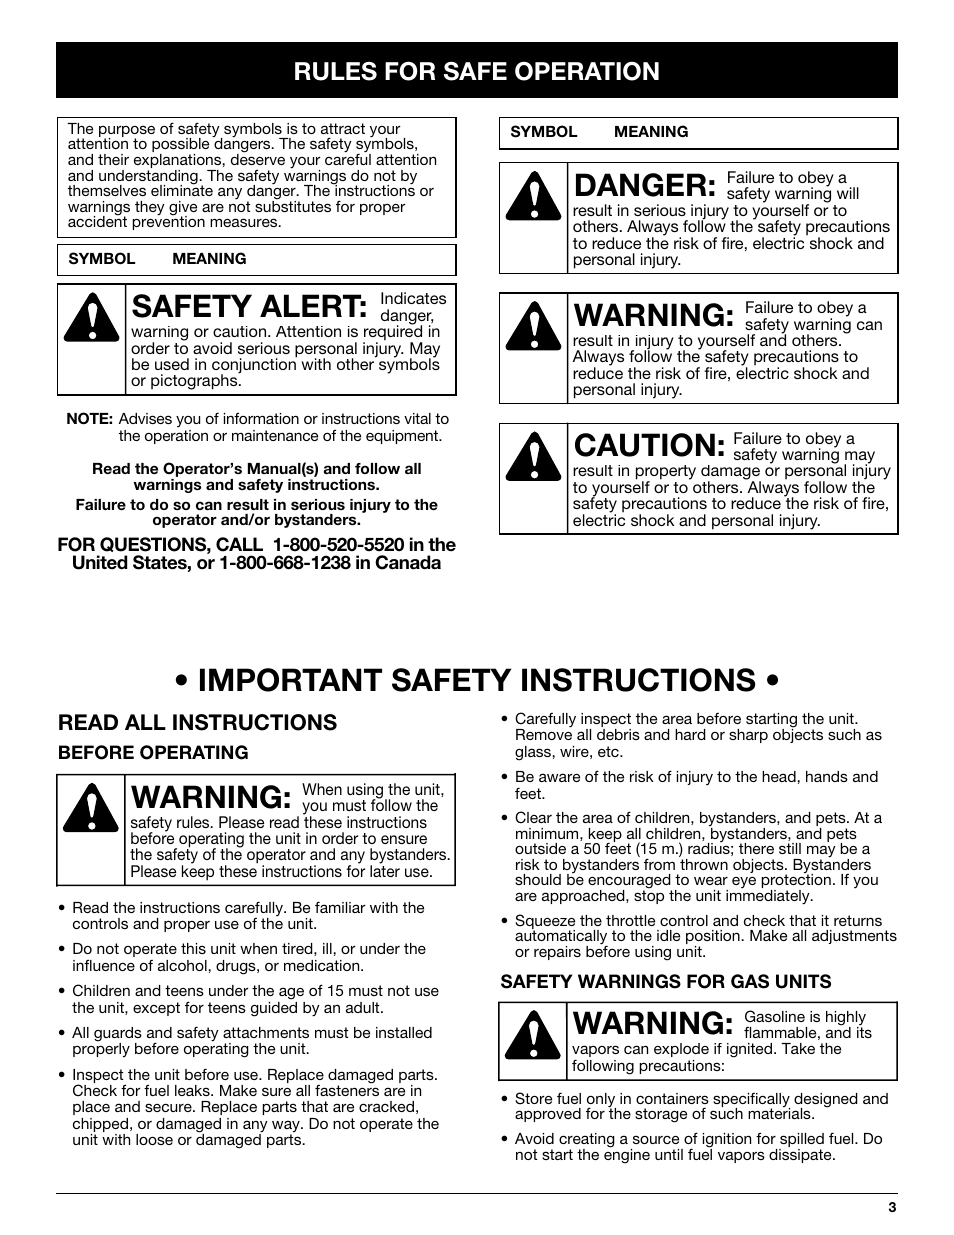 Warning: • important safety instructions, Warning, Danger   Caution, Safety  alert,